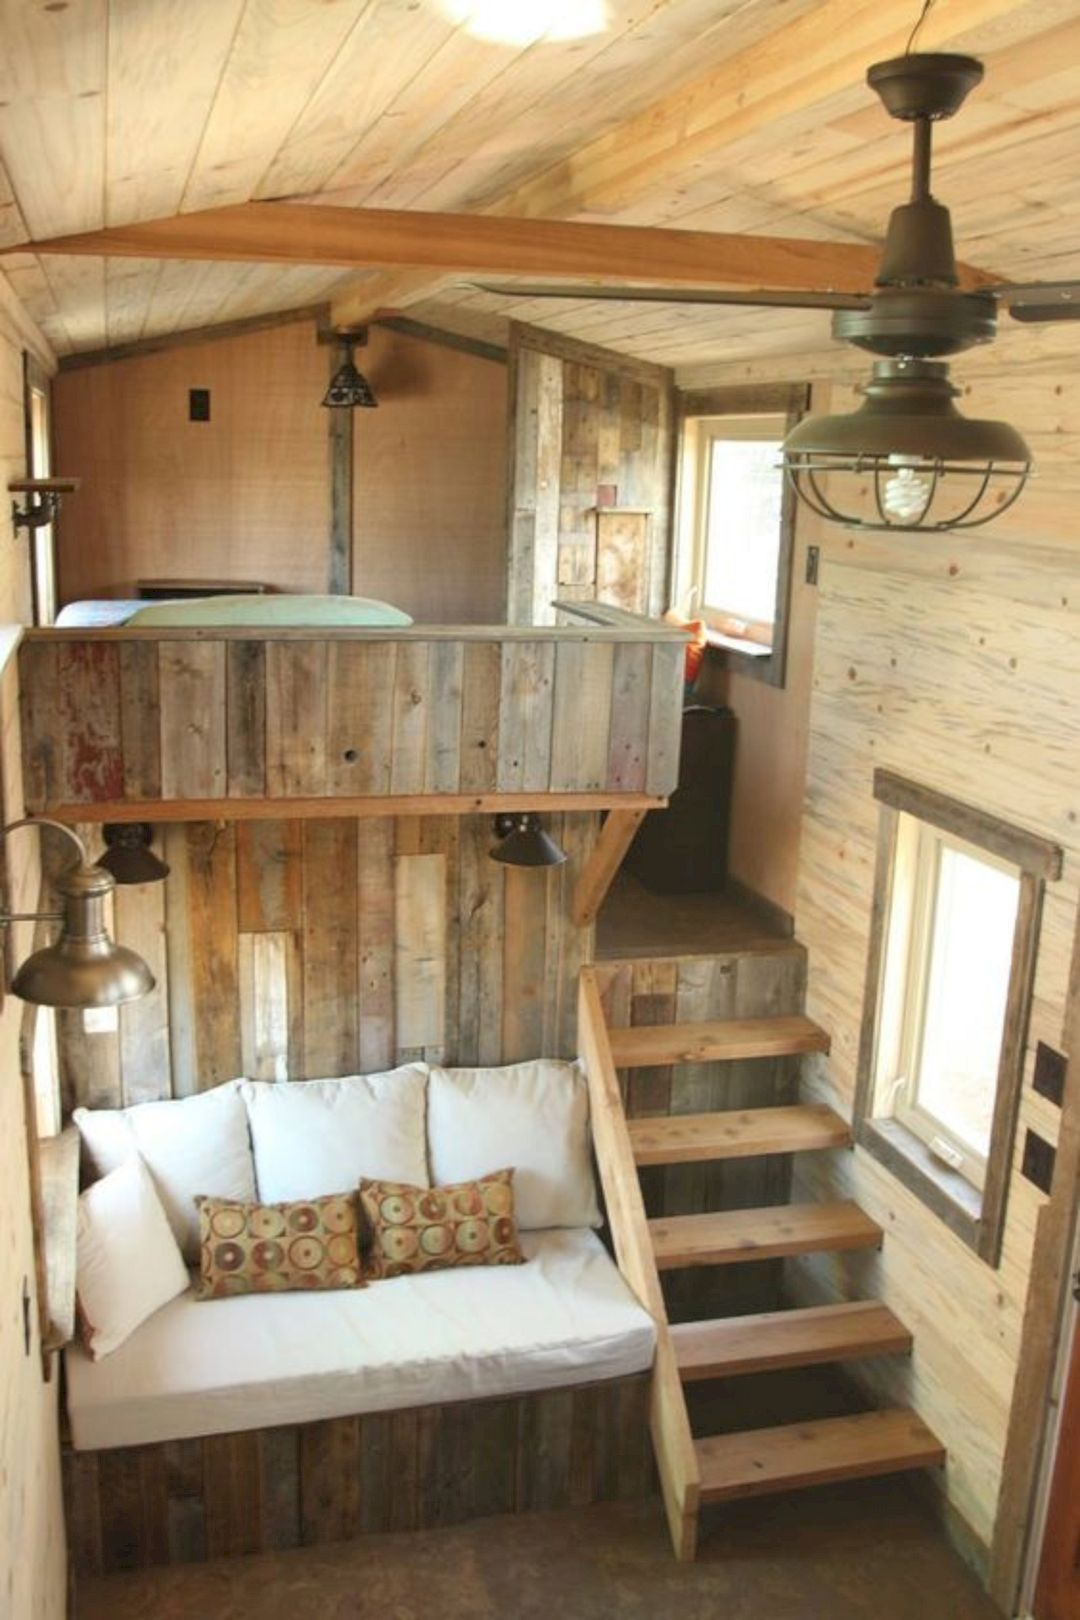 16 Tiny House Interior Design Ideas (With Images)